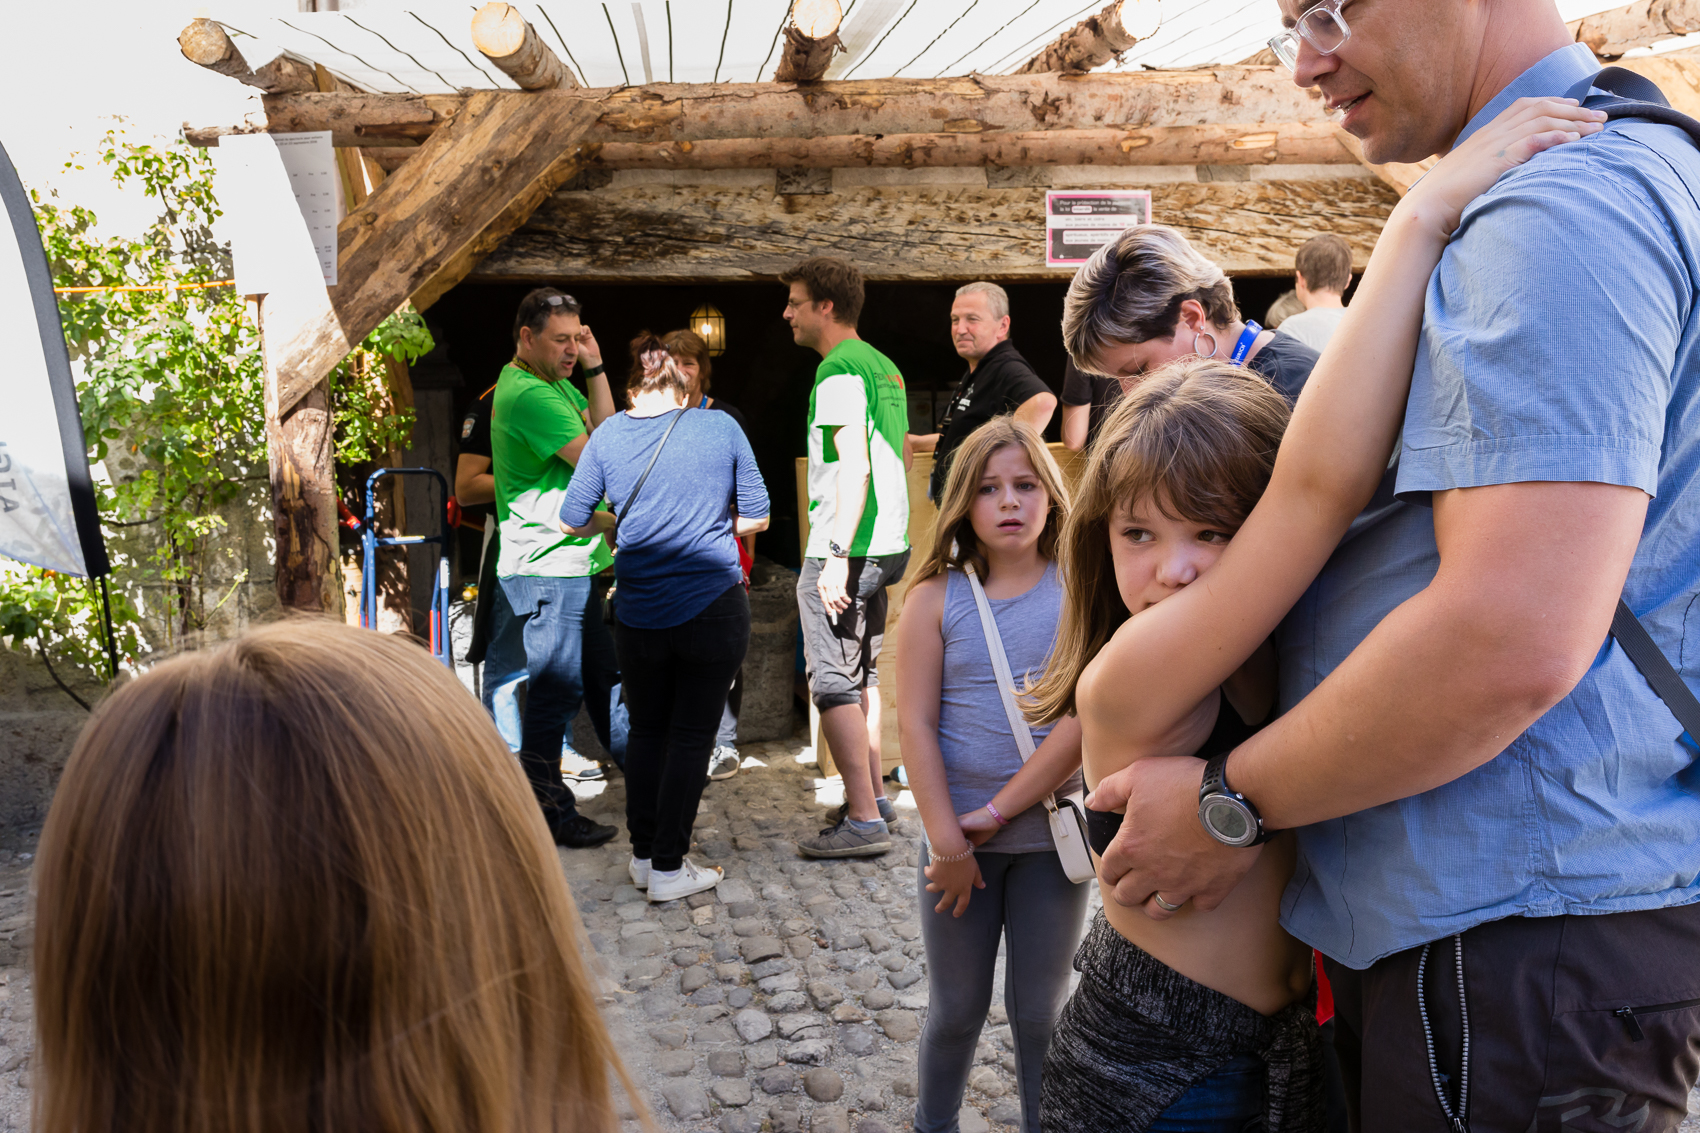 it was SO hot, the day, and so fun to see what was happening at every turn at the castle and festival meant just for children. Here the experience of childhood elevated reminds us that play is at the centre of it all.